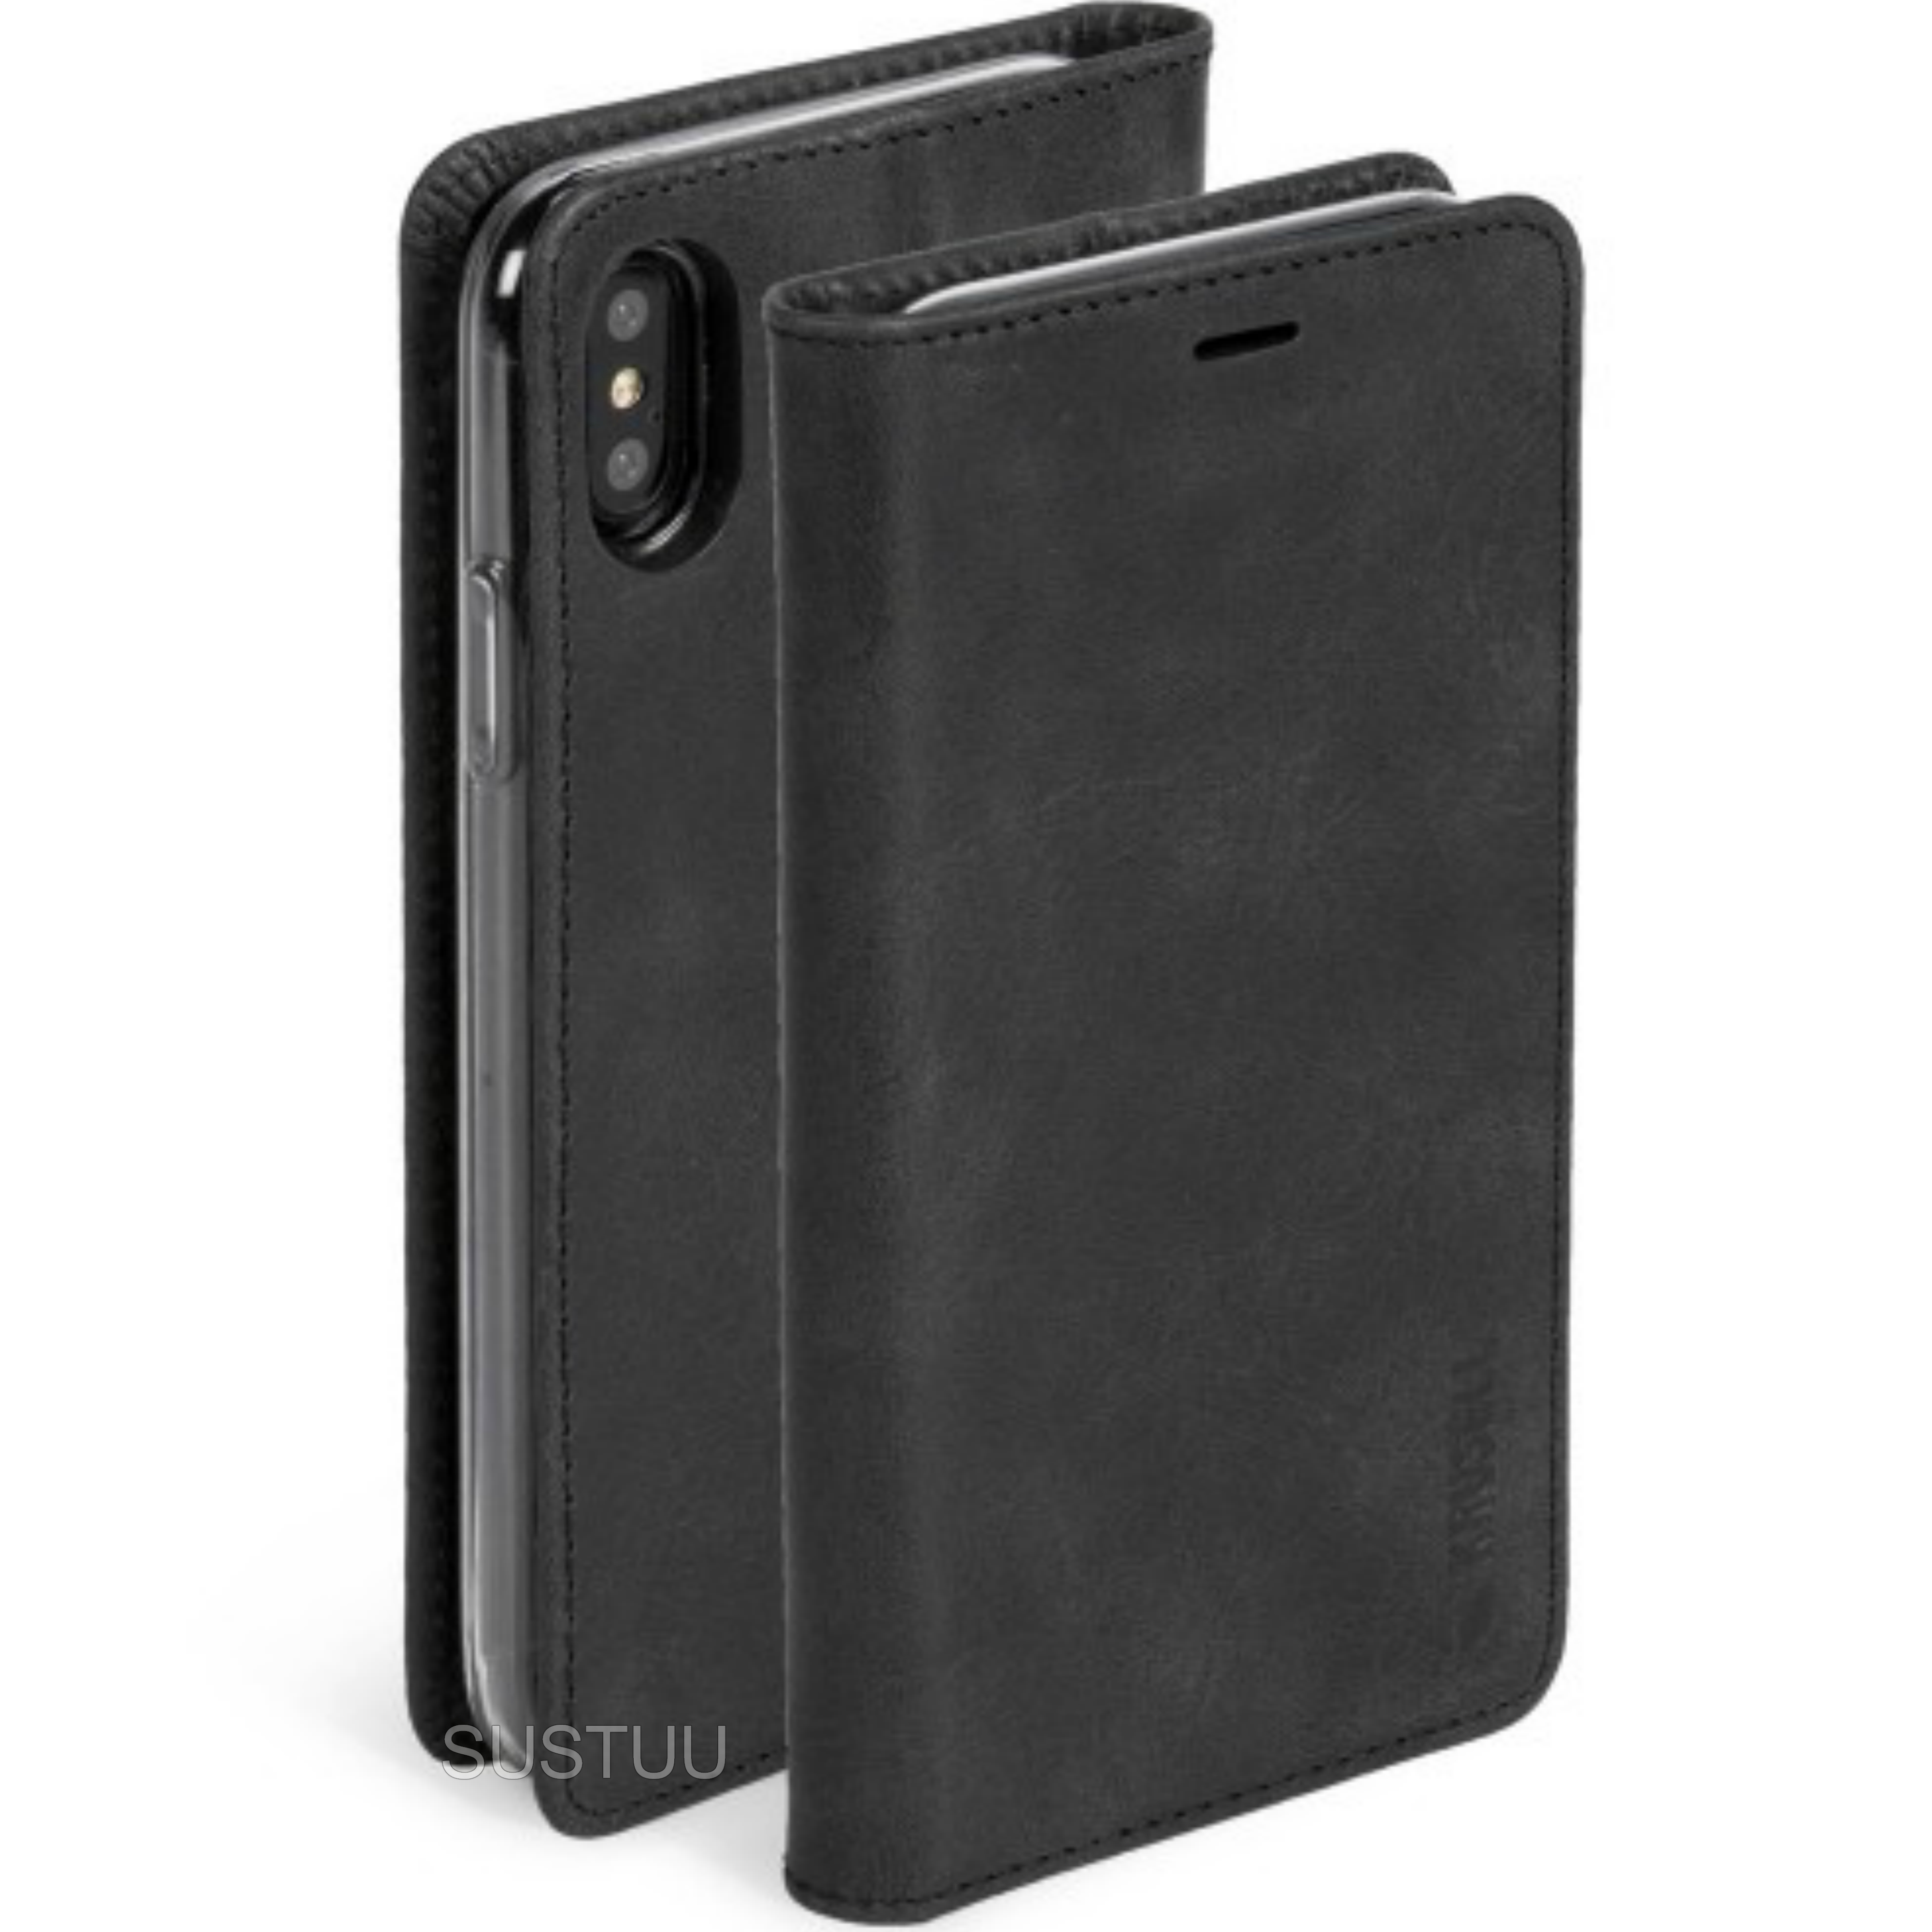 Krusell Sunne Folio Wallet + Flip Case | 4Card Protective Cover + Bill Pocket | iPhone X